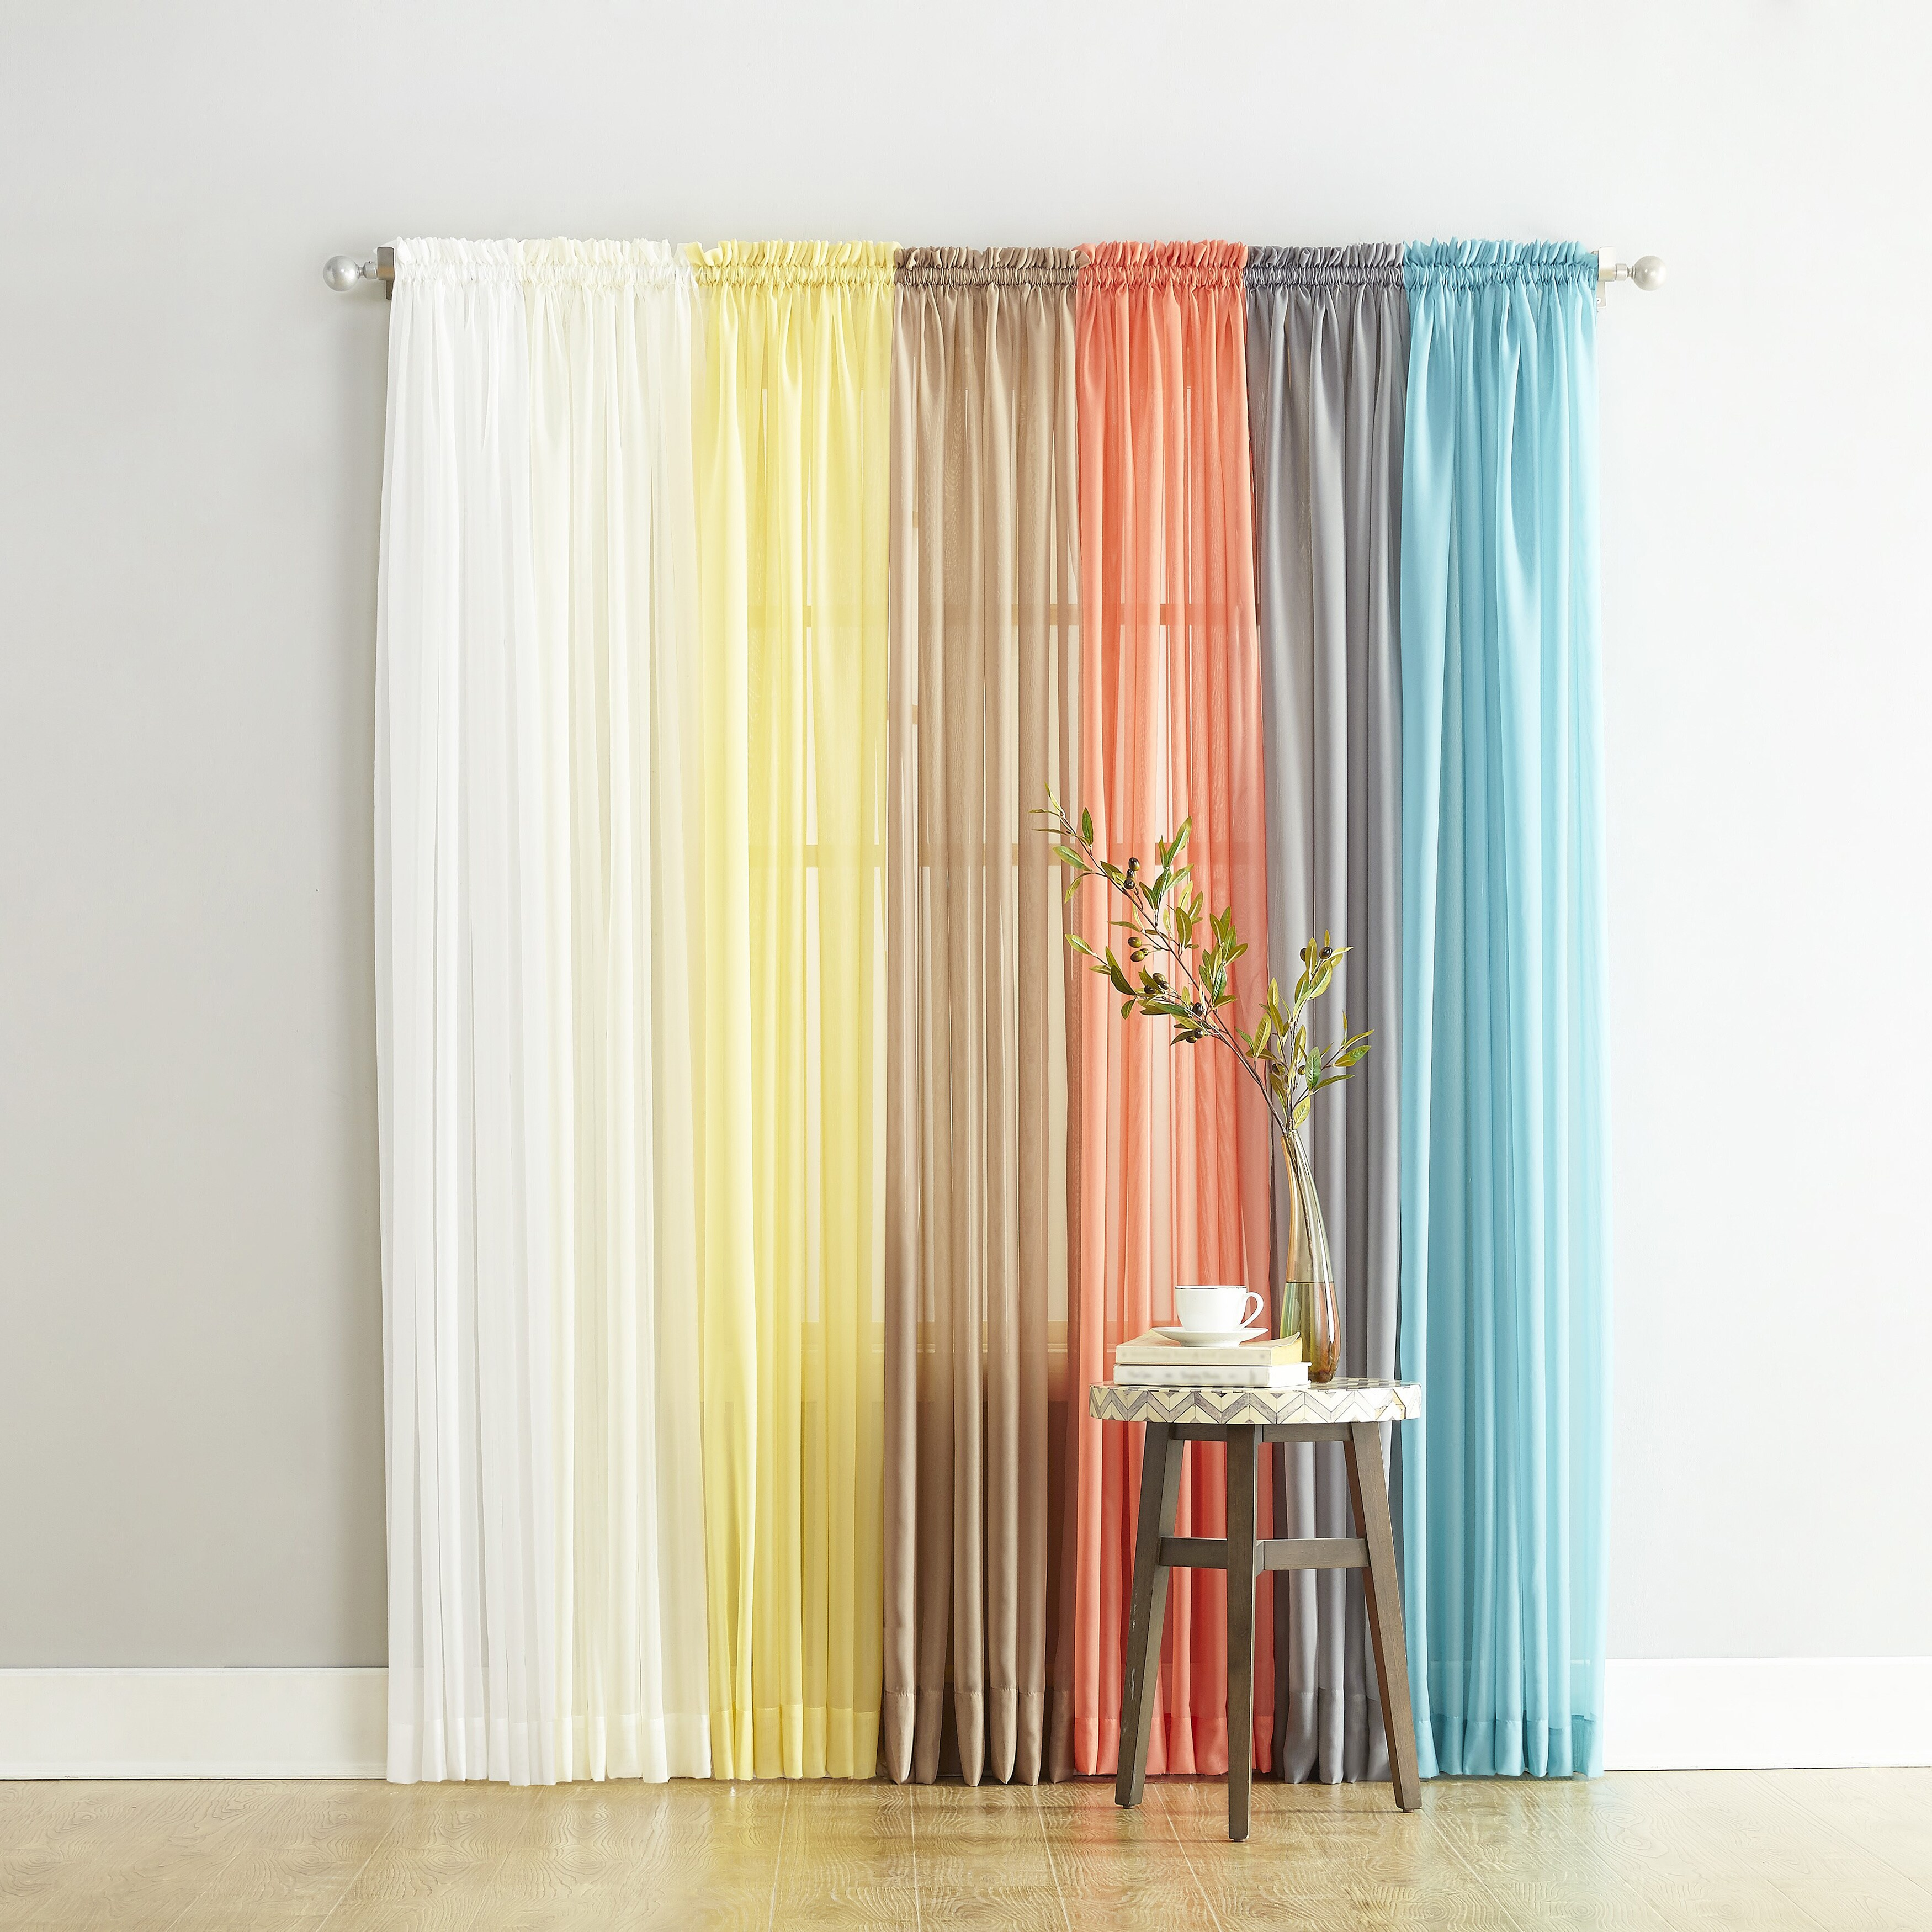 105 Inch Curtains Buy 108 Inches Sheer Curtains Online At Overstock Our Best